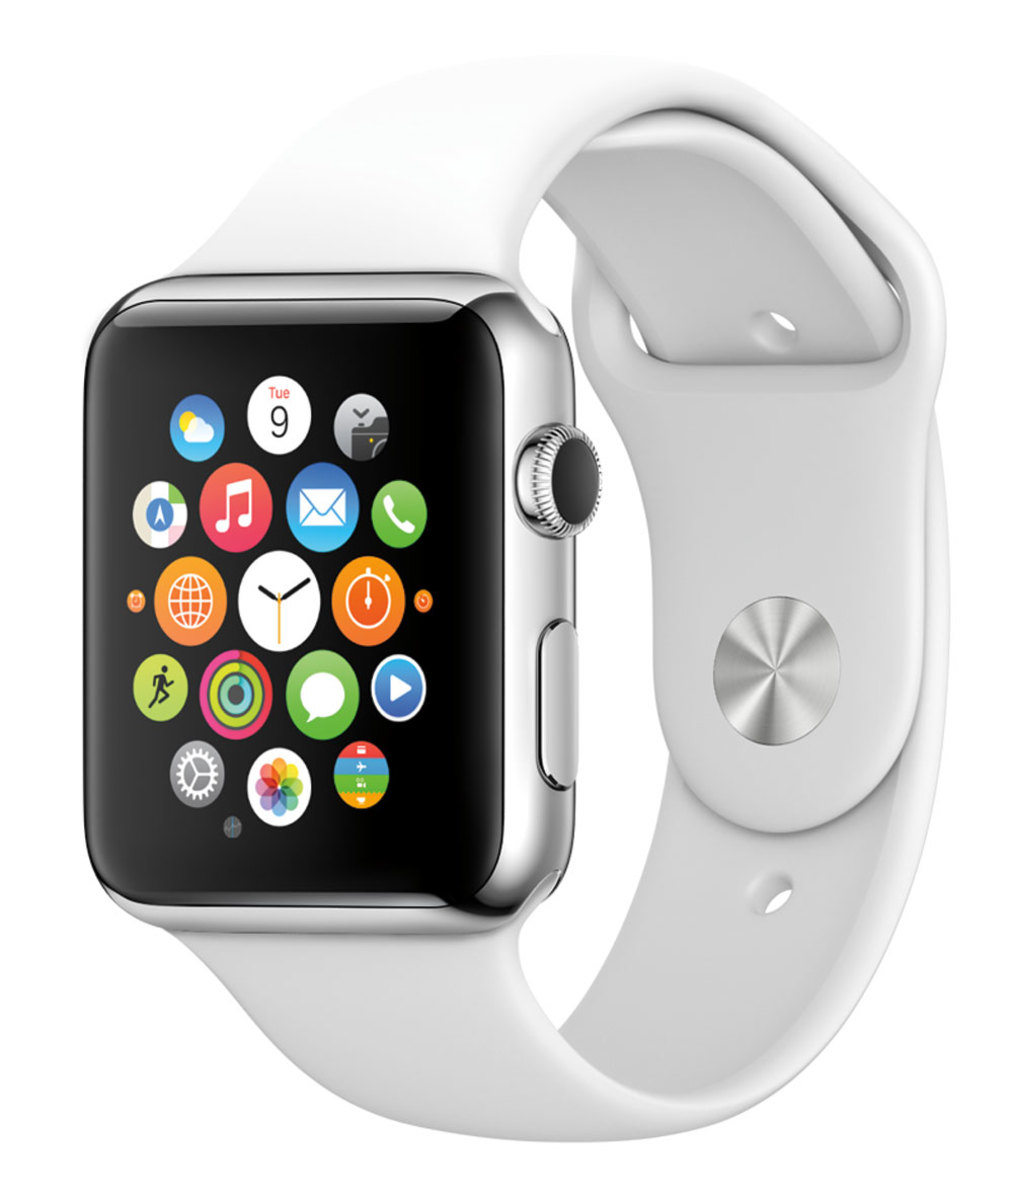 Apple Watch. (Photo: Apple)